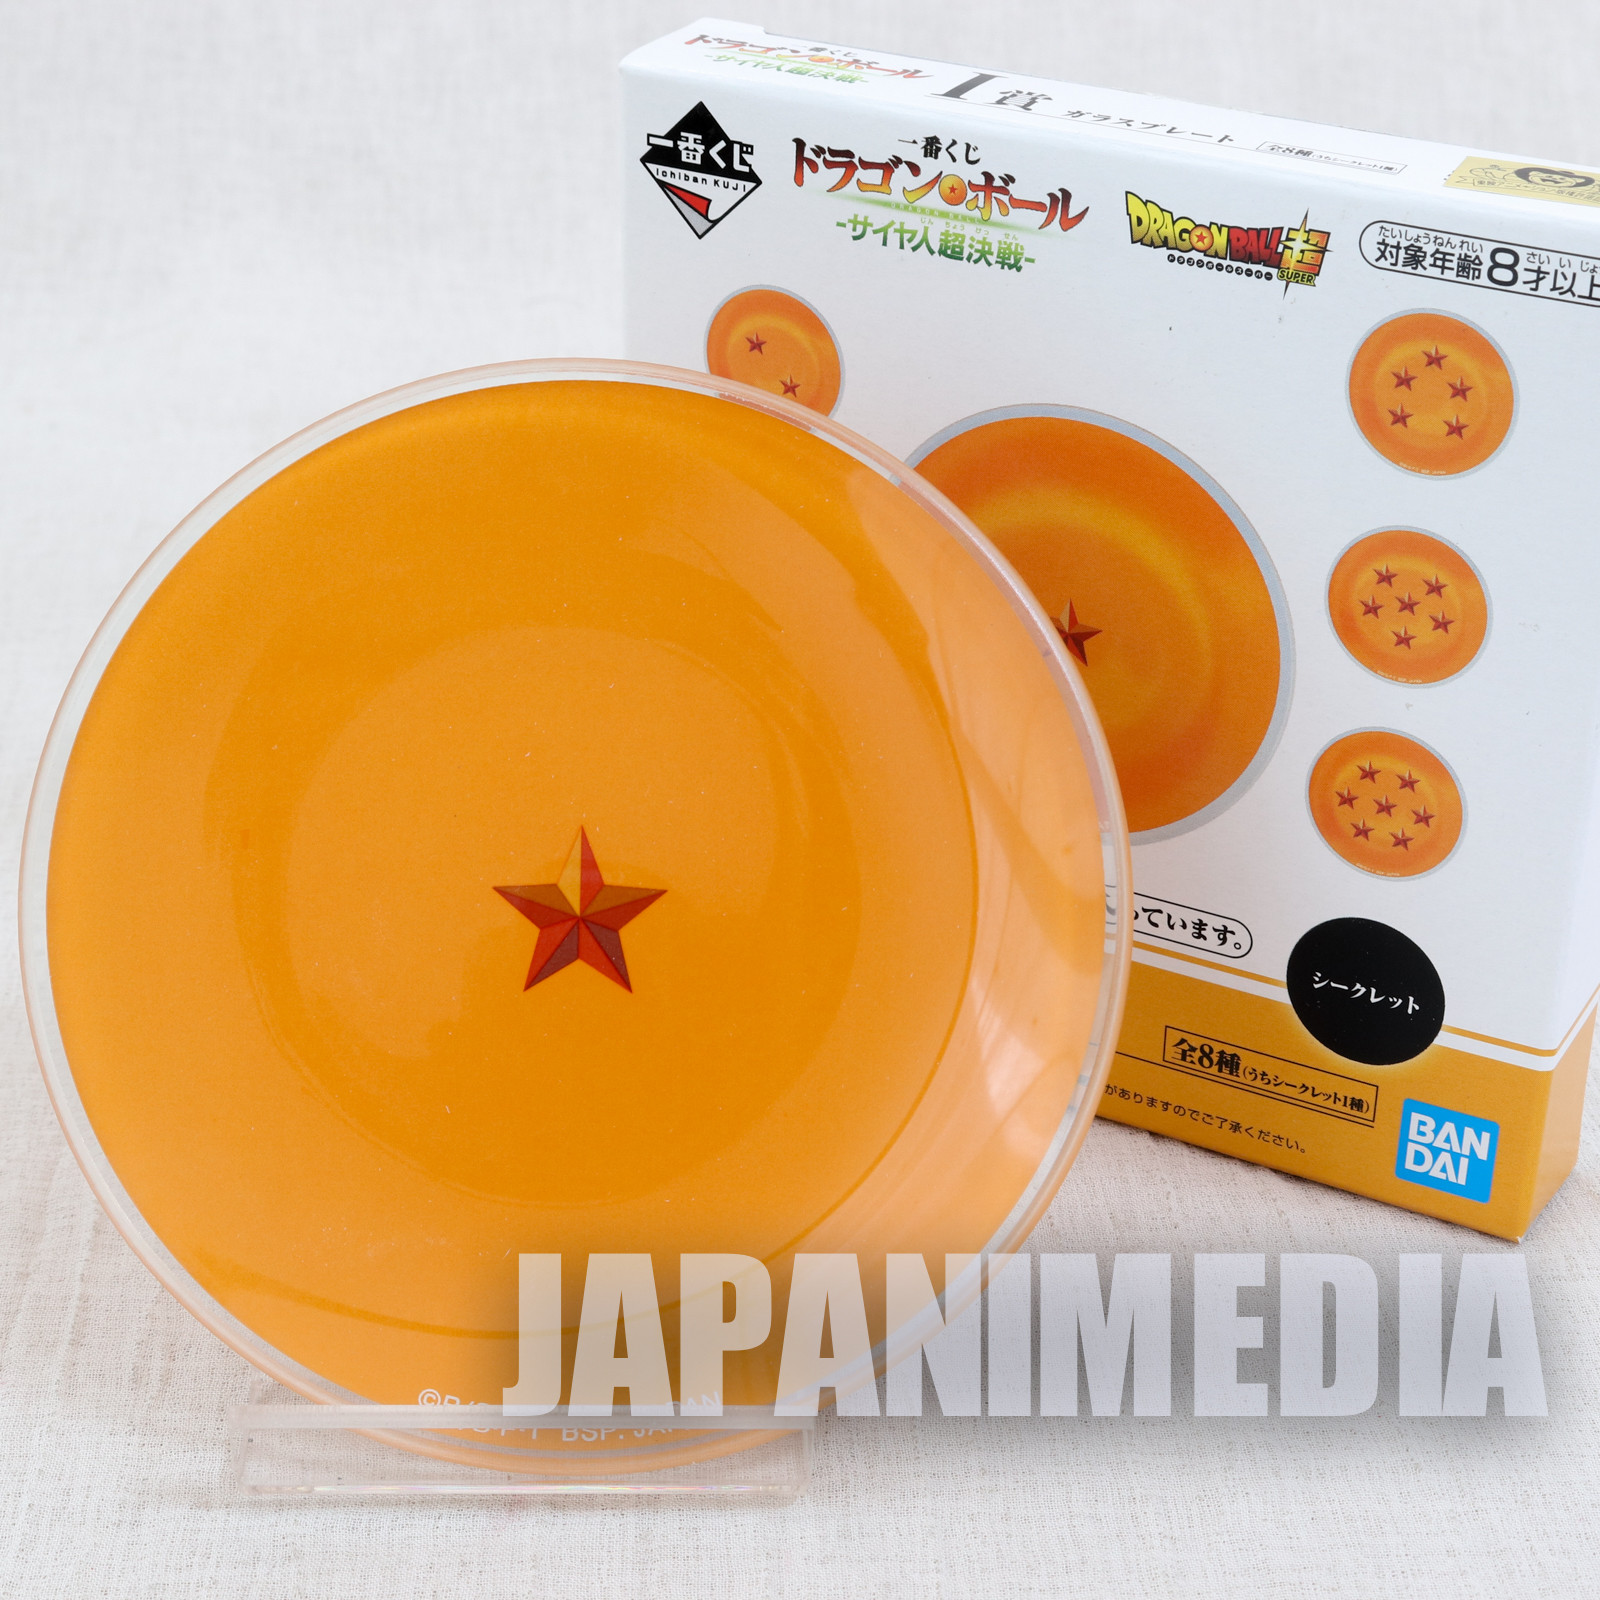 Dragon Ball Z Glass Plate #1 Ball Banpresto JAPAN